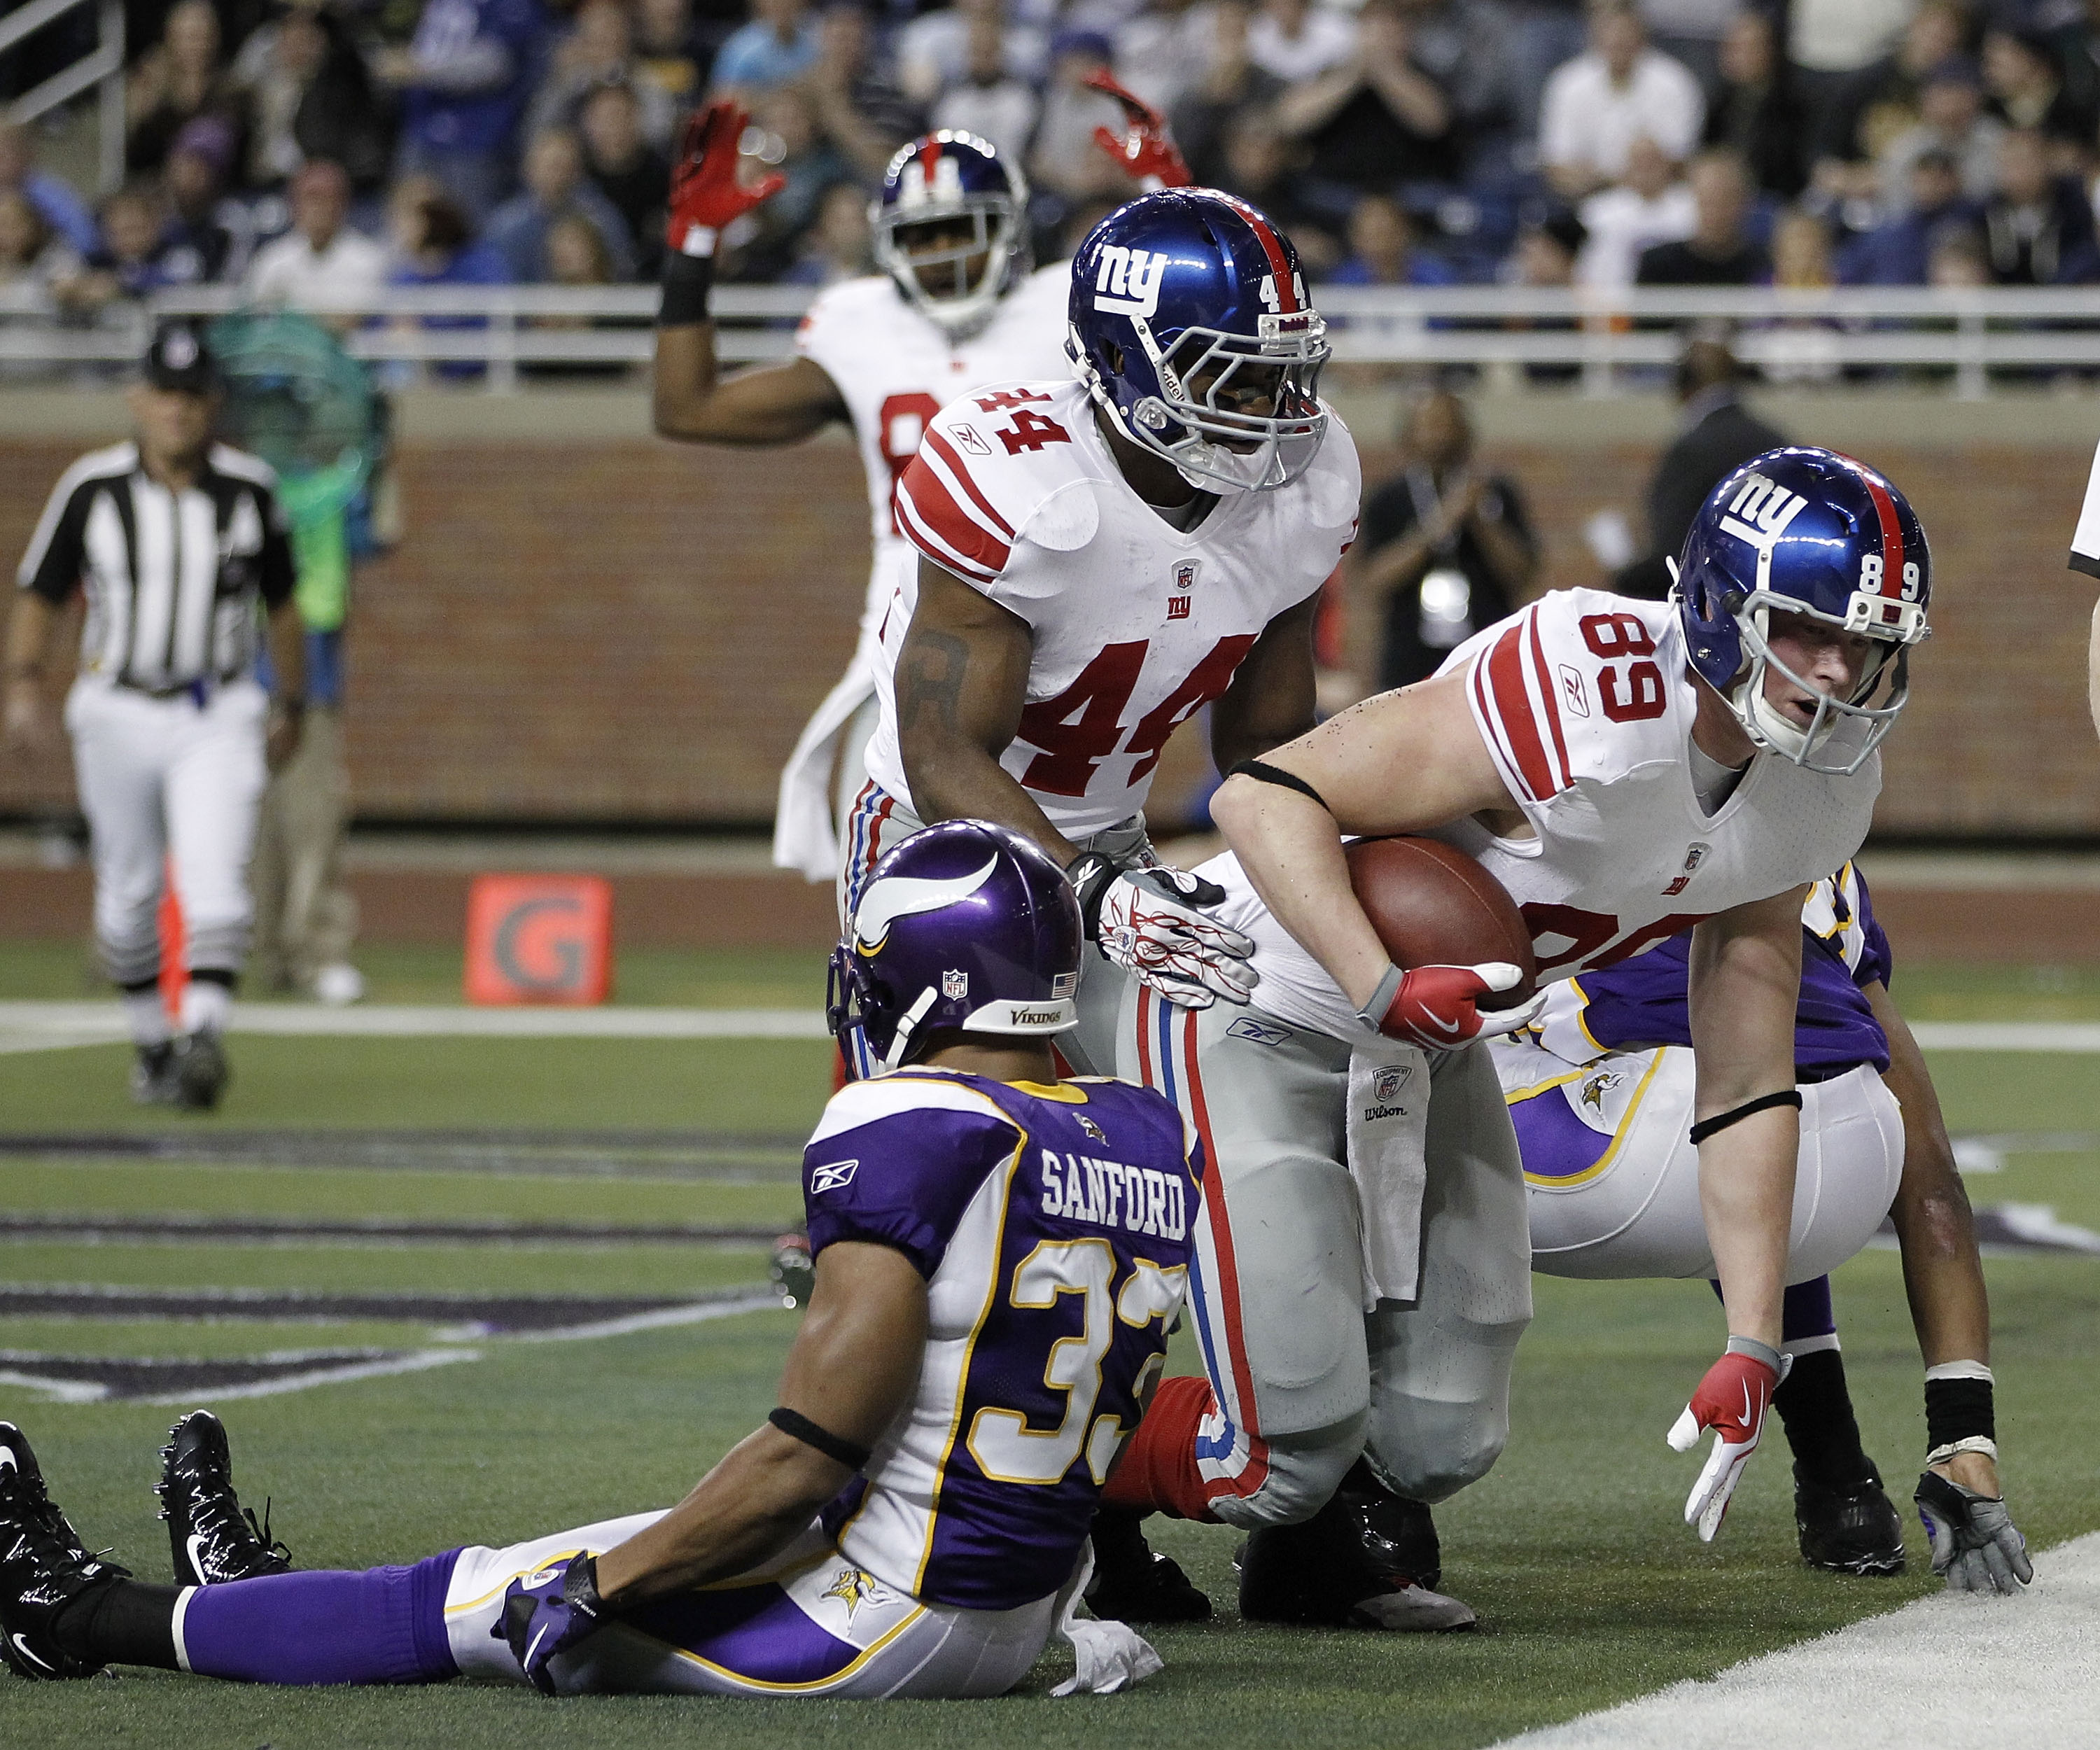 DETROIT, MI - DECEMBER 13:  Kevin Boss #89 of the New York Giants catches a second quarter touchdown behind Jamarca Sanford #33 of the Minnesota Vikings at Ford Field on December 13, 2010 in Detroit, Michigan.  (Photo by Gregory Shamus/Getty Images)